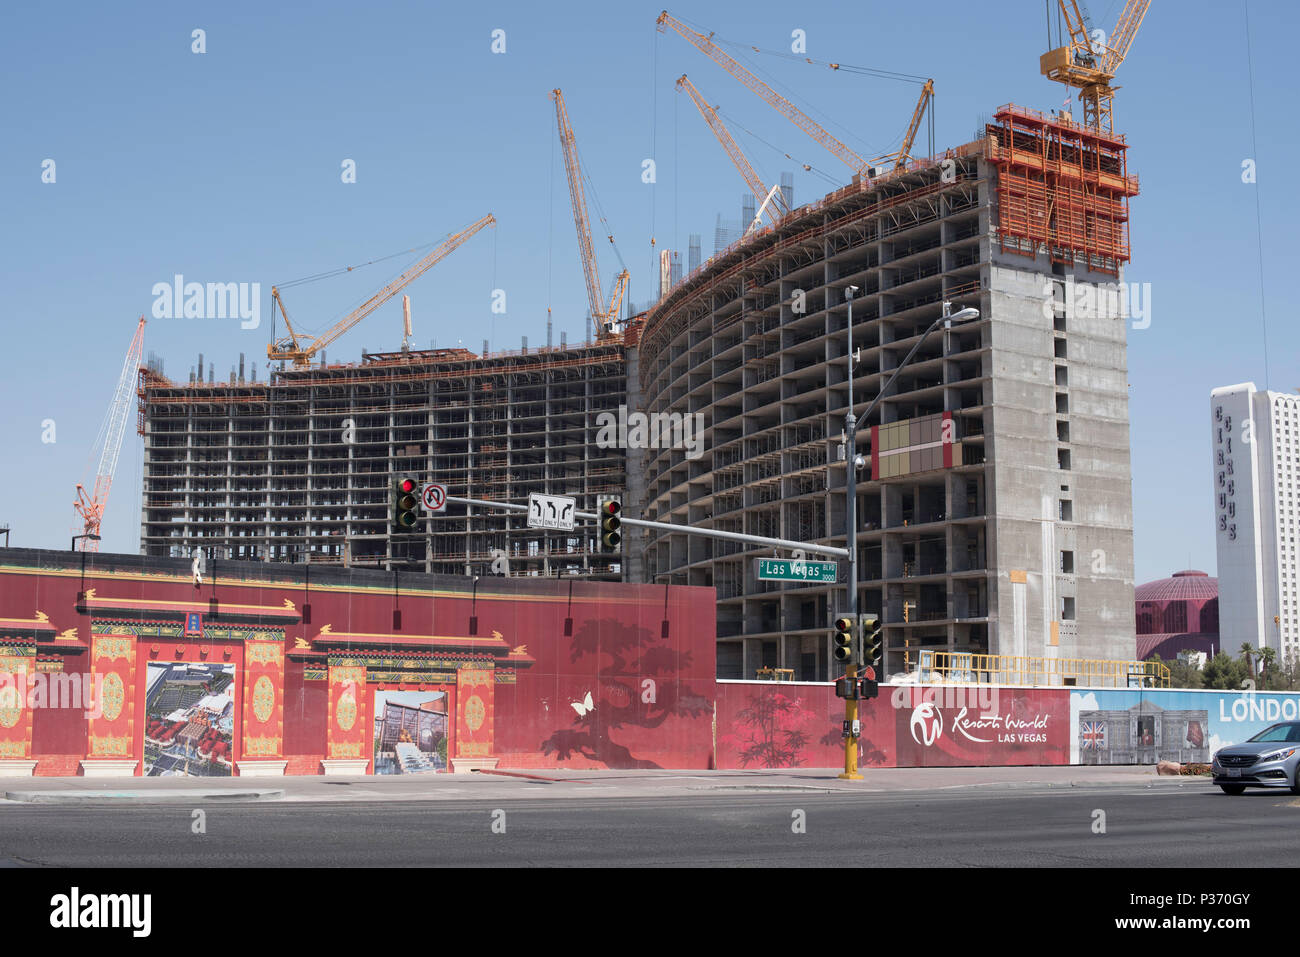 new casino being built in las vegas